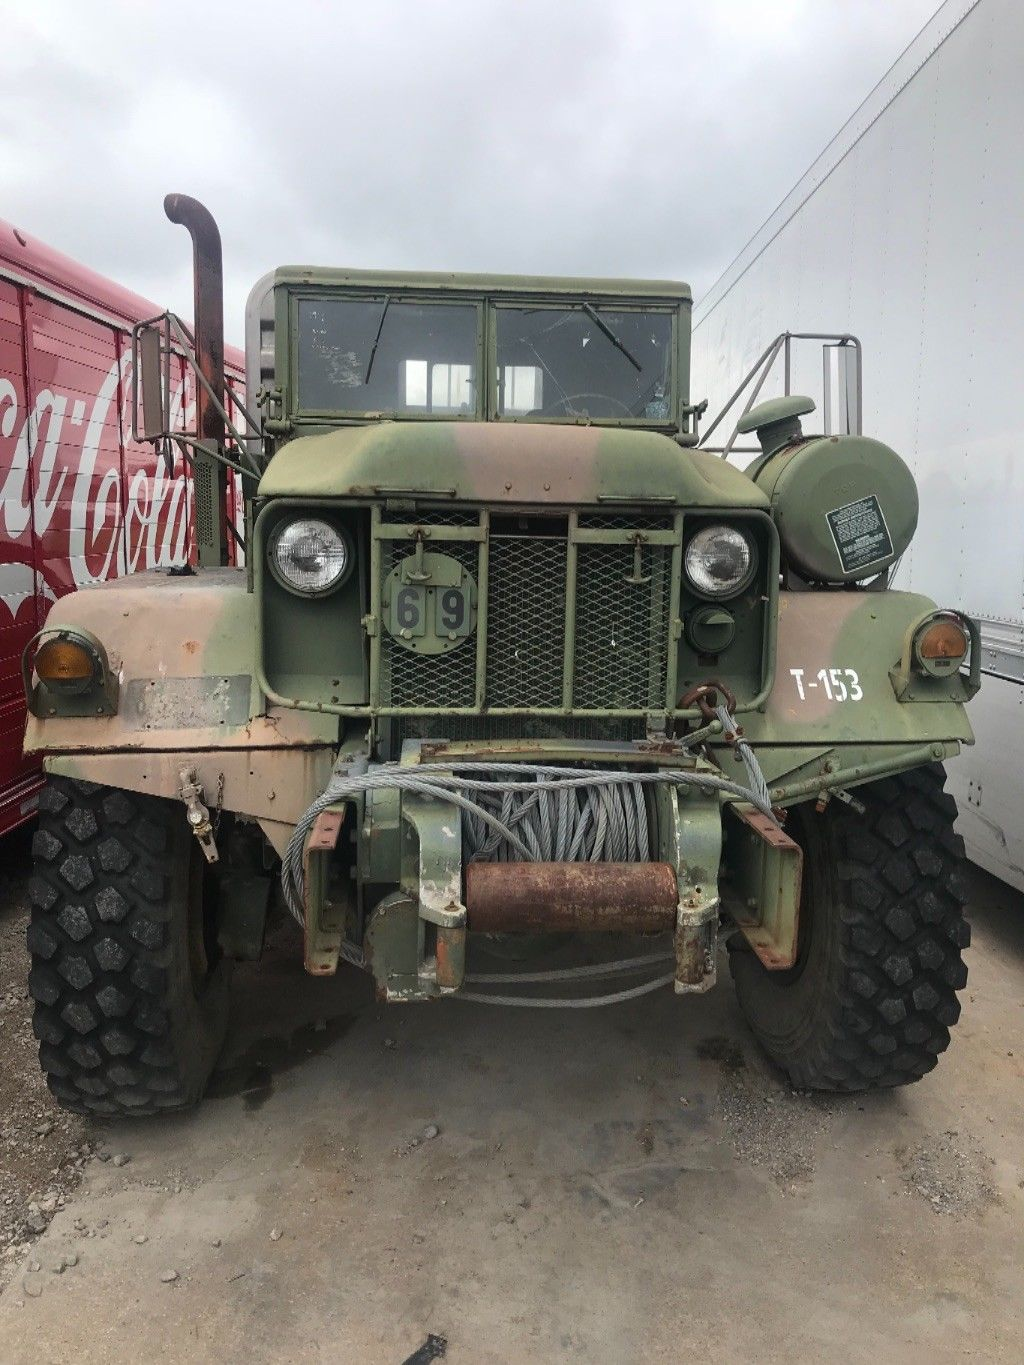 fully serviced 1972 Kaiser Jeep Xm818 6X6 Military for sale